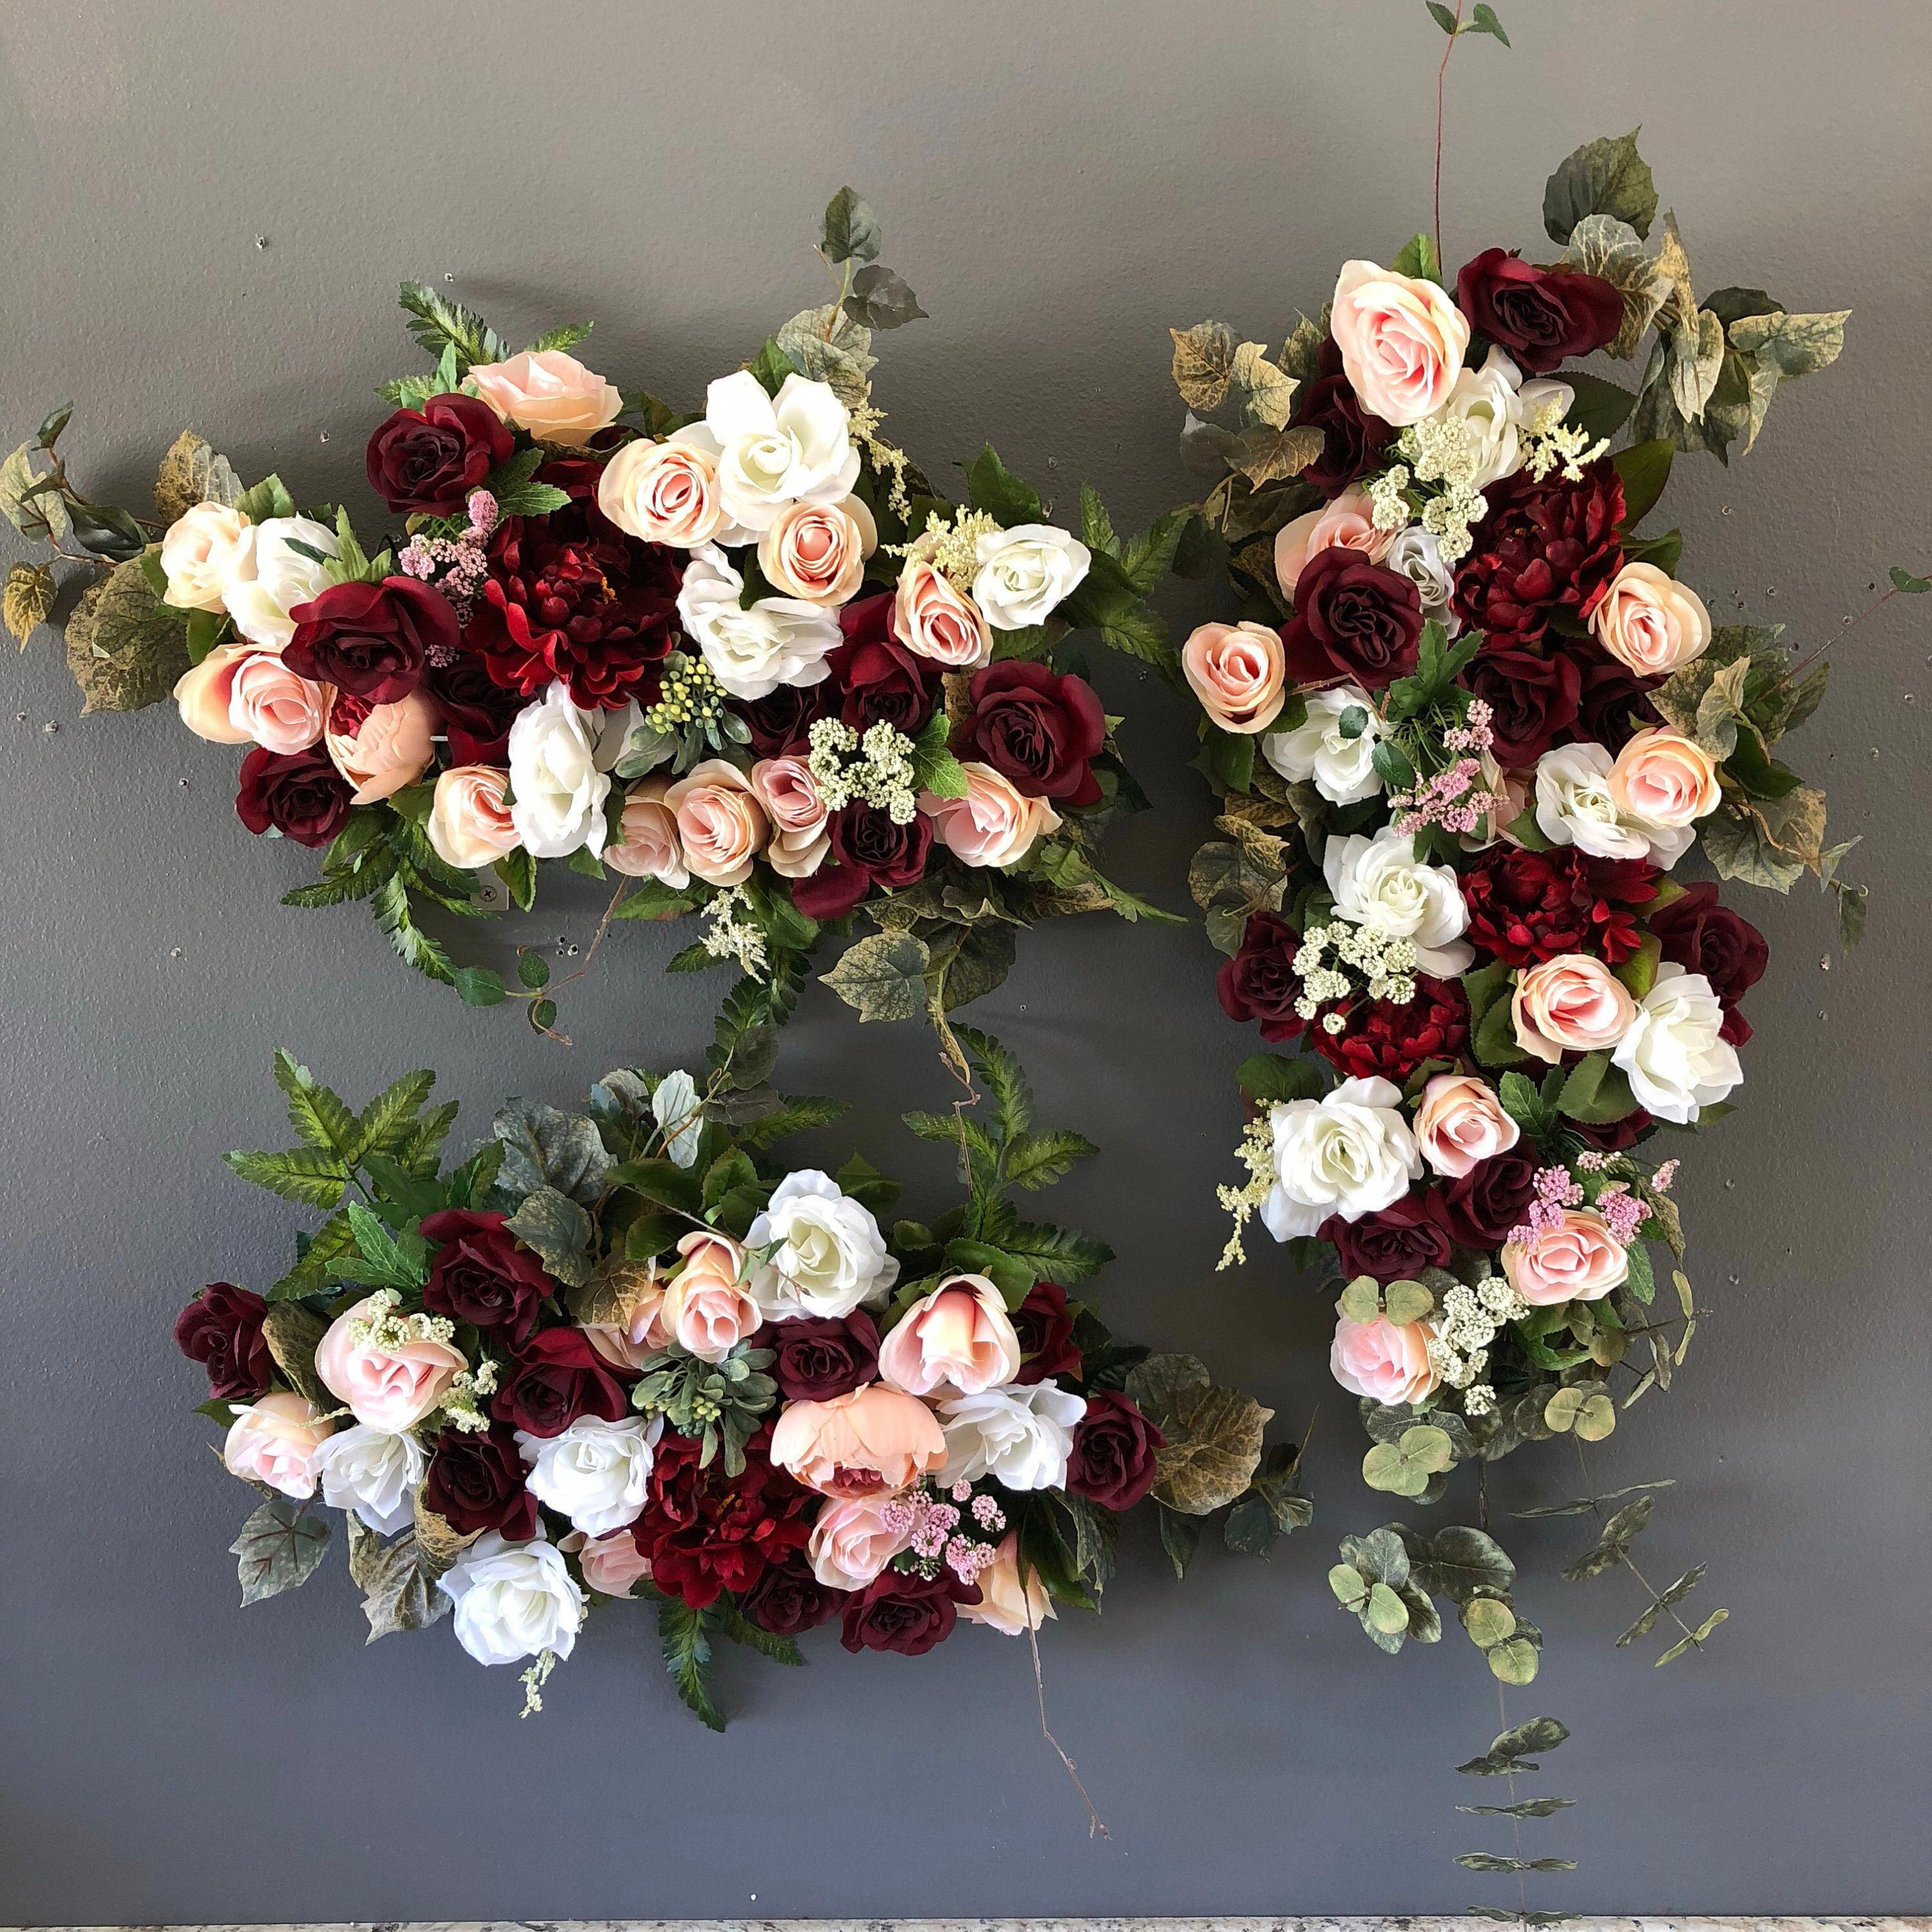 Burgundy Blush Pink Wedding Ceremony Arch Package, Wedding Arch Flowers, Wedding Archway Flowers, Circle Arch Flowers, Circular Arch, Swags